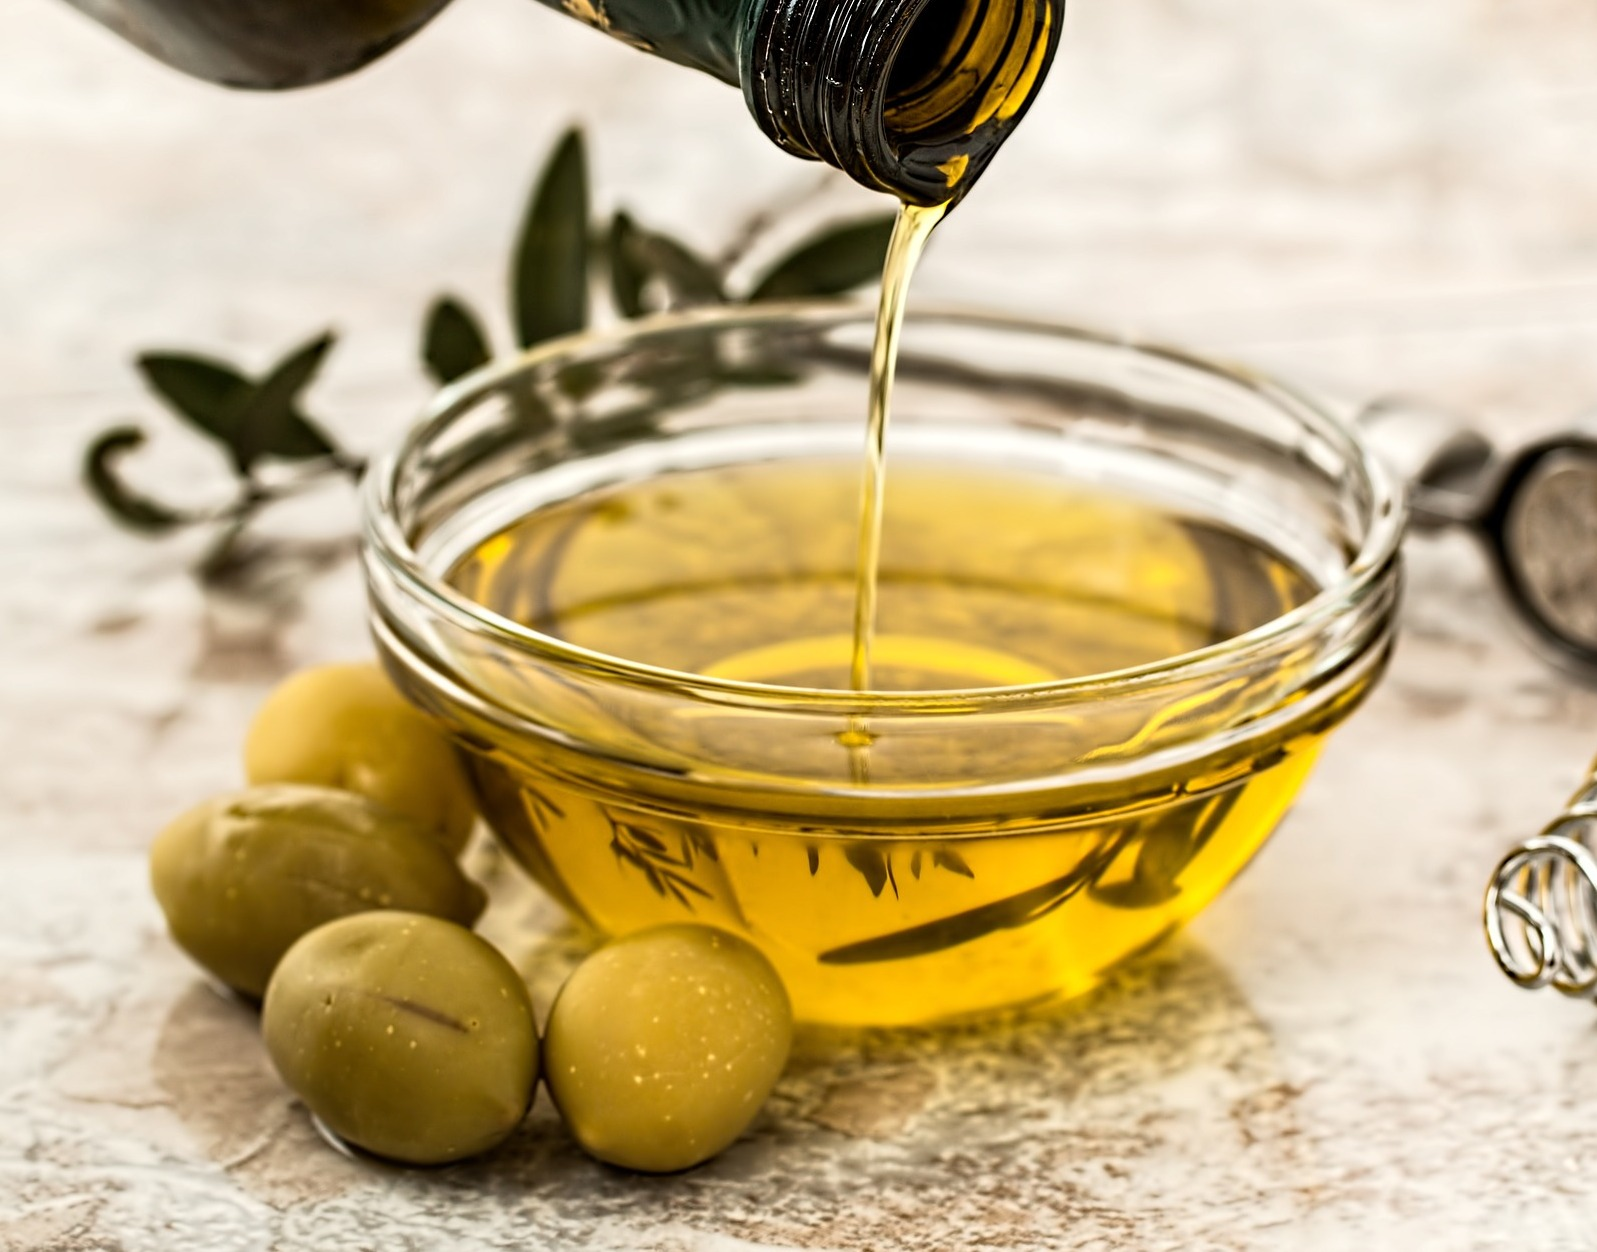 Integrated Olive Oil farm Business